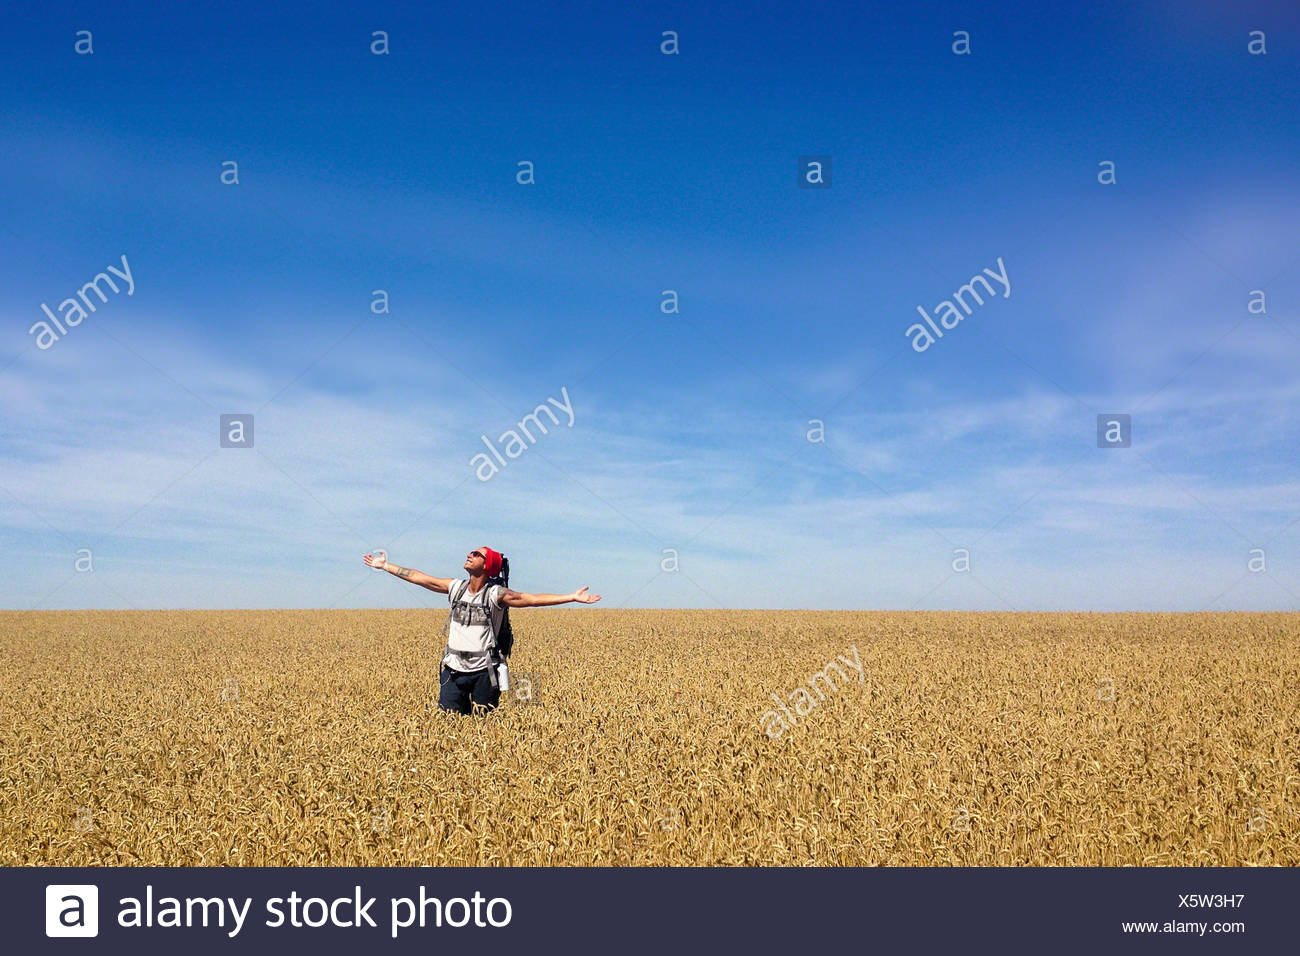 Man standing in wheat field with arms outstretched - Stock Image